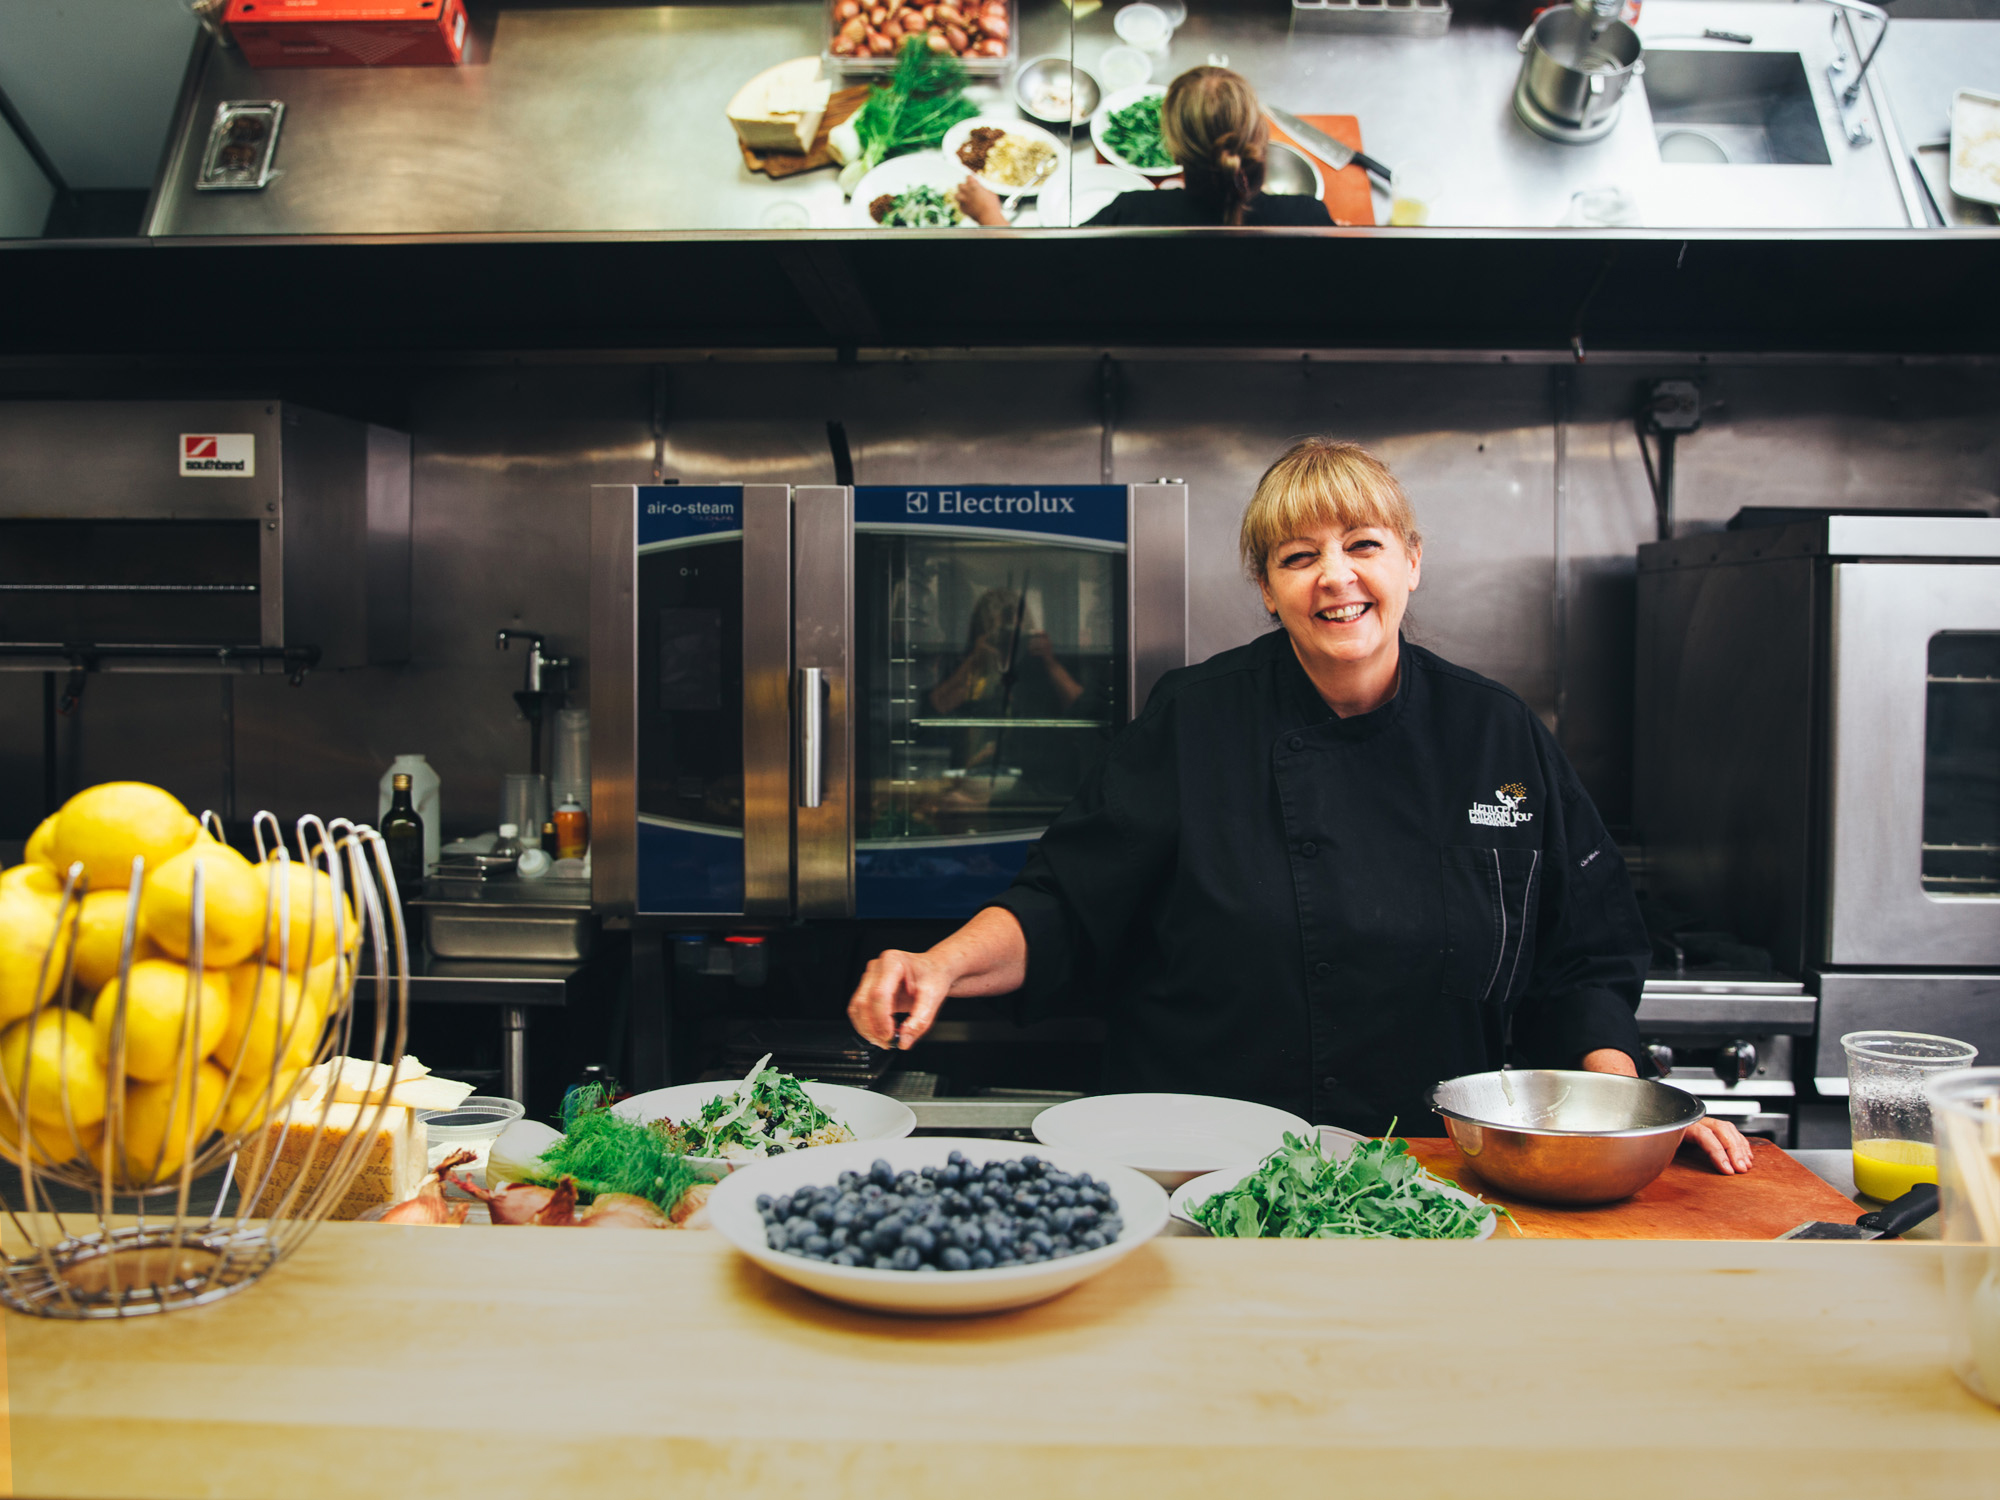 THE MOST INFLUENTIAL CHEF (NO ONE KNOWS ABOUT) IN CHICAGO